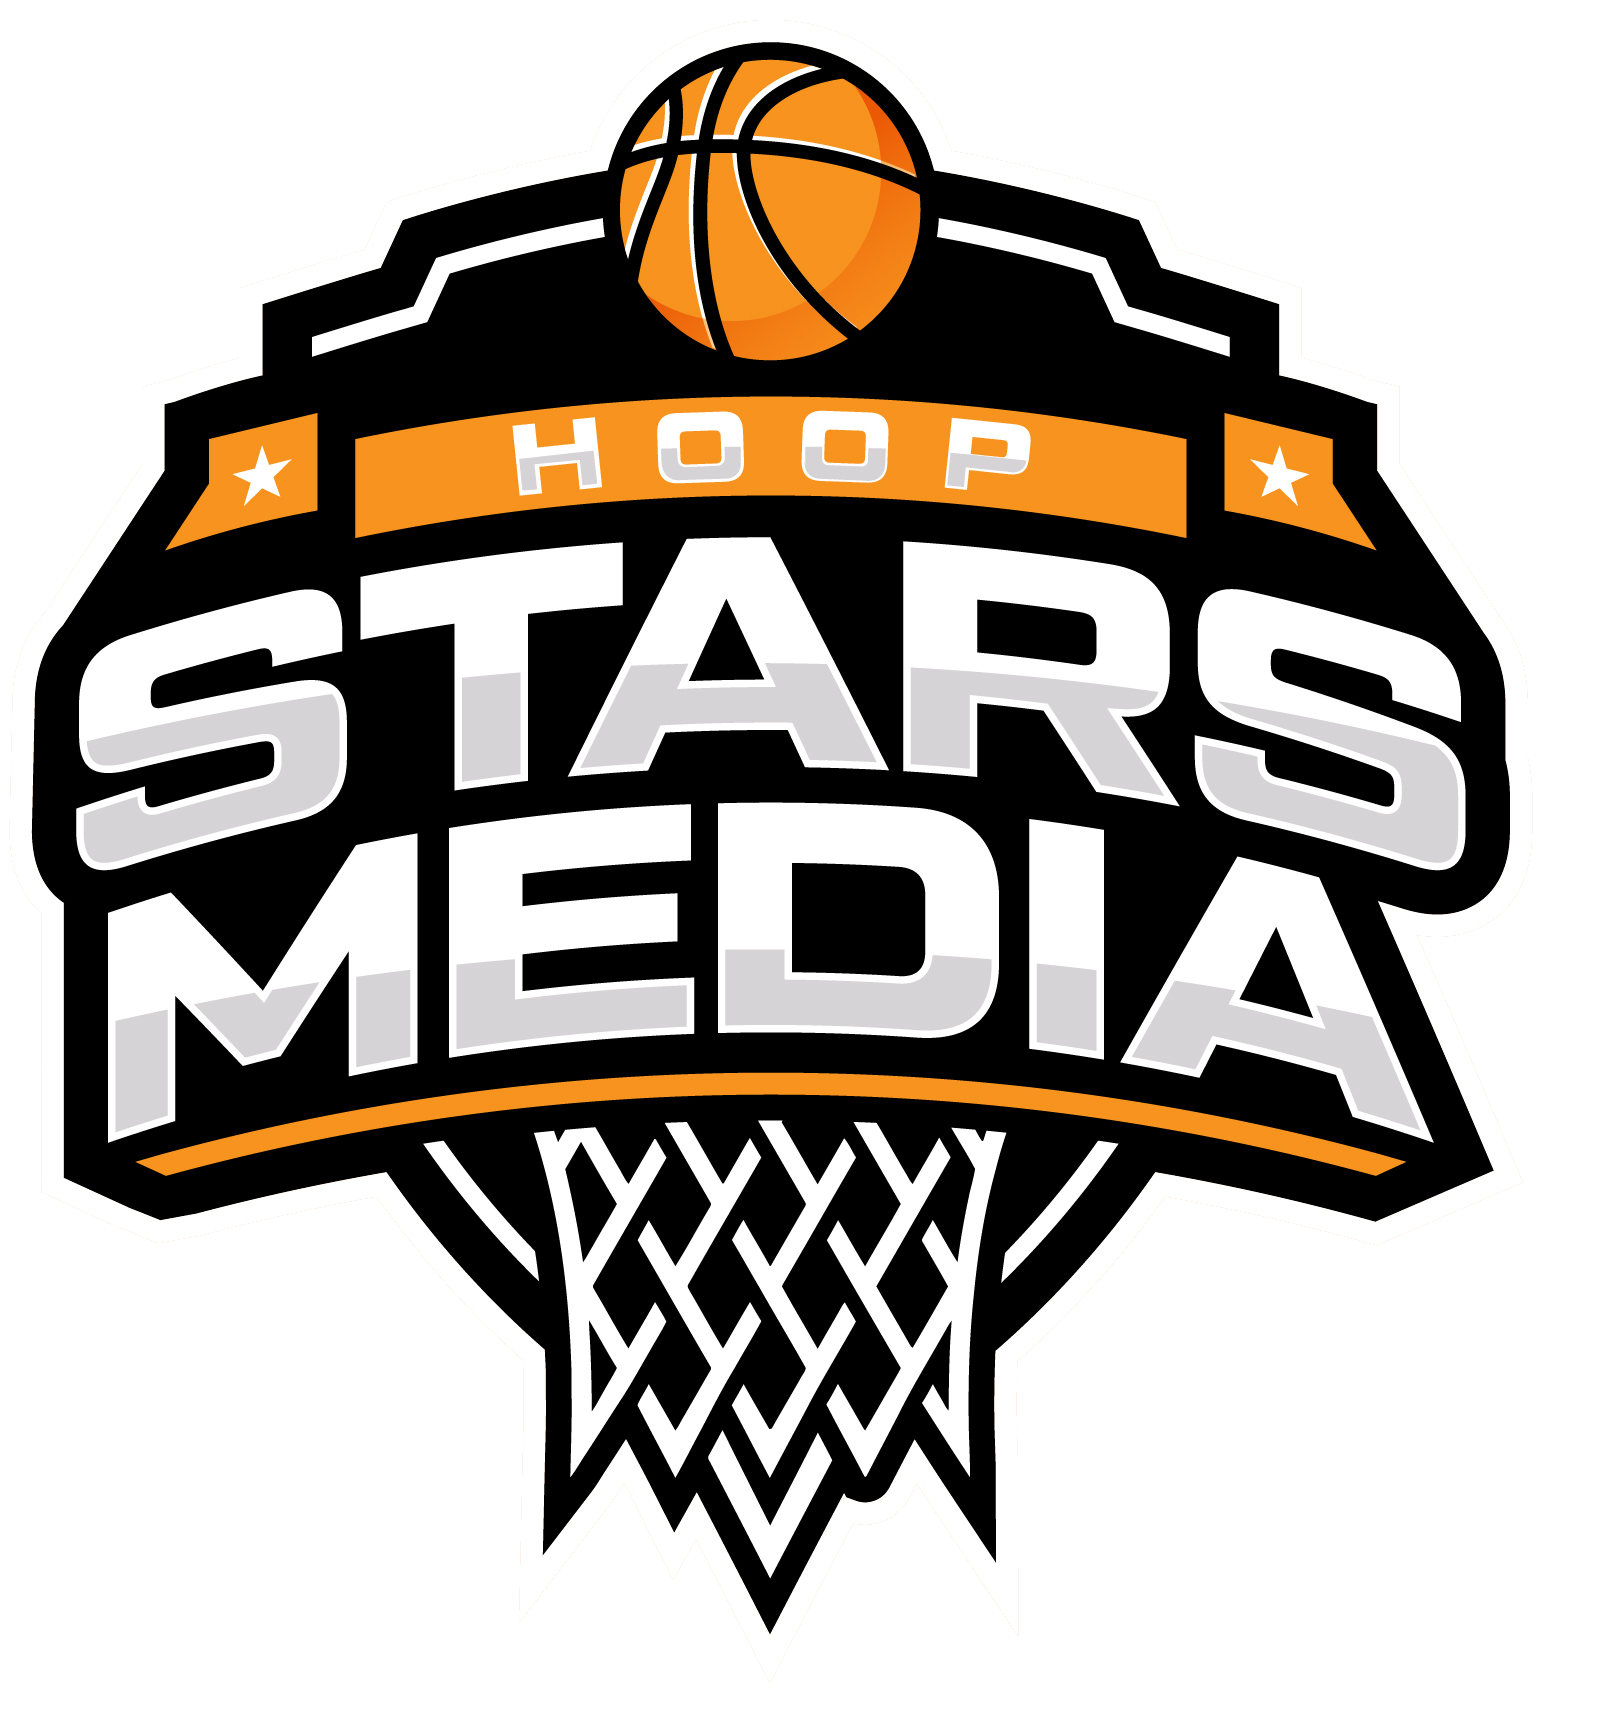 Hoop Stars Media I Prep Coverage I Online Magazine